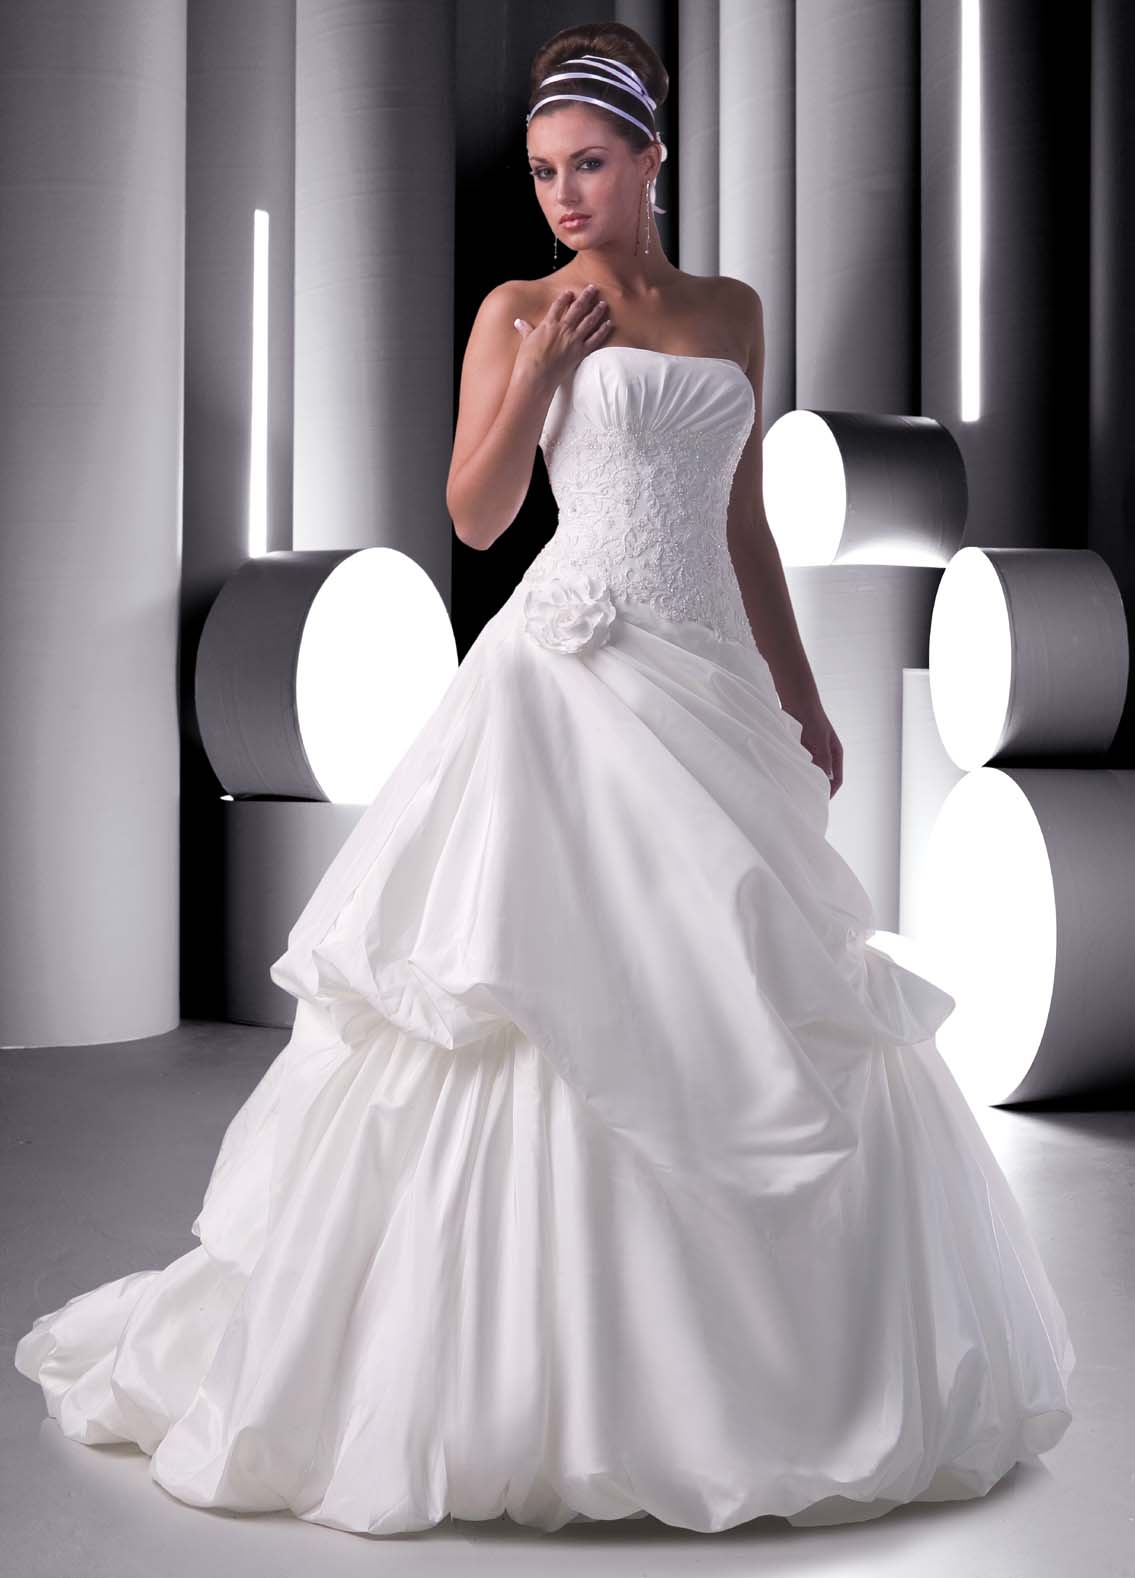 Bridal Dresses - Wedding dress styles.